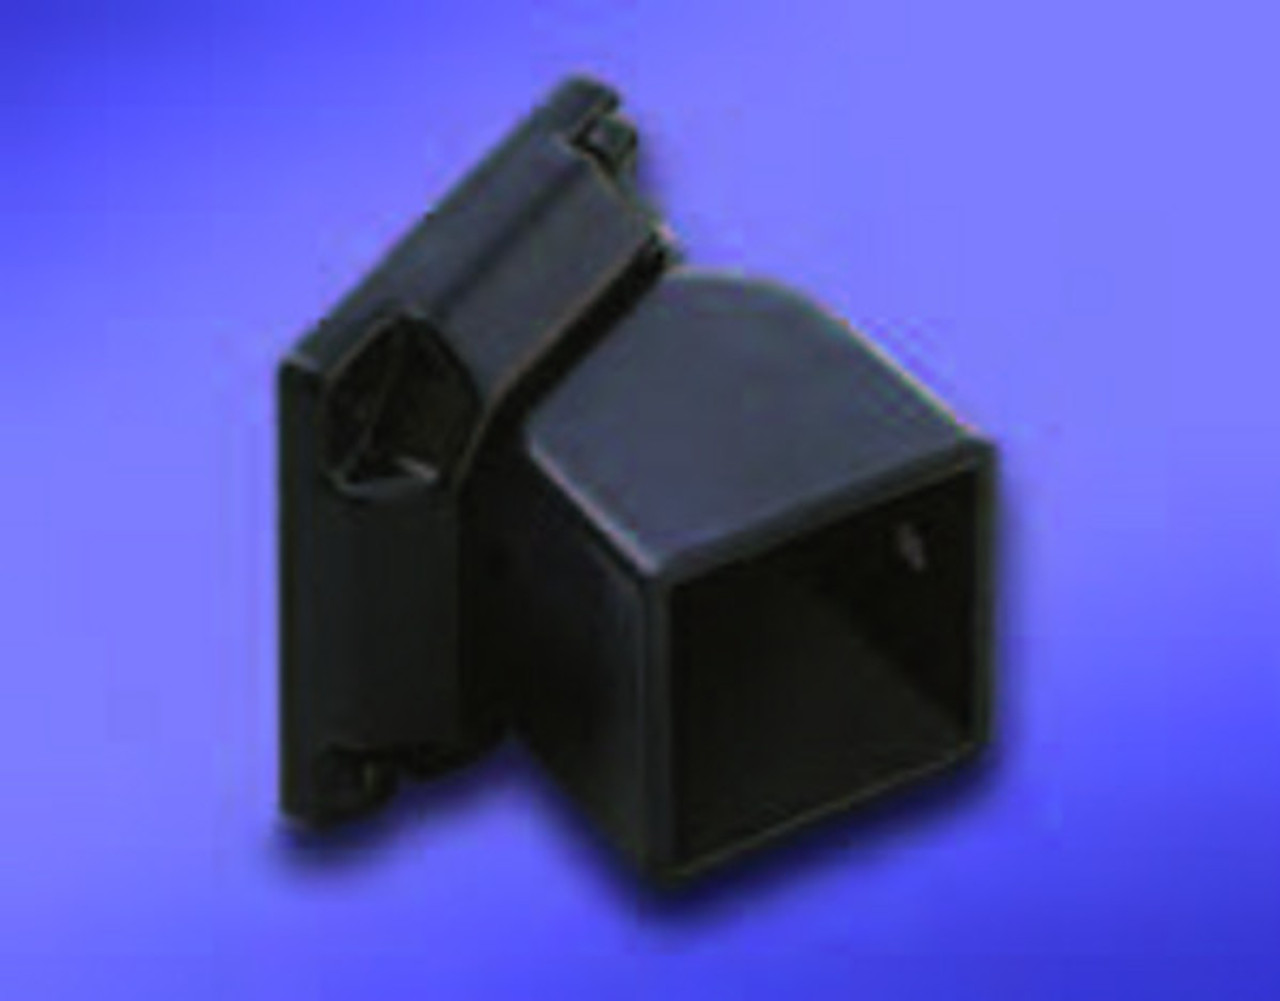 Regis 3000 Series Swivel Mounts - Black